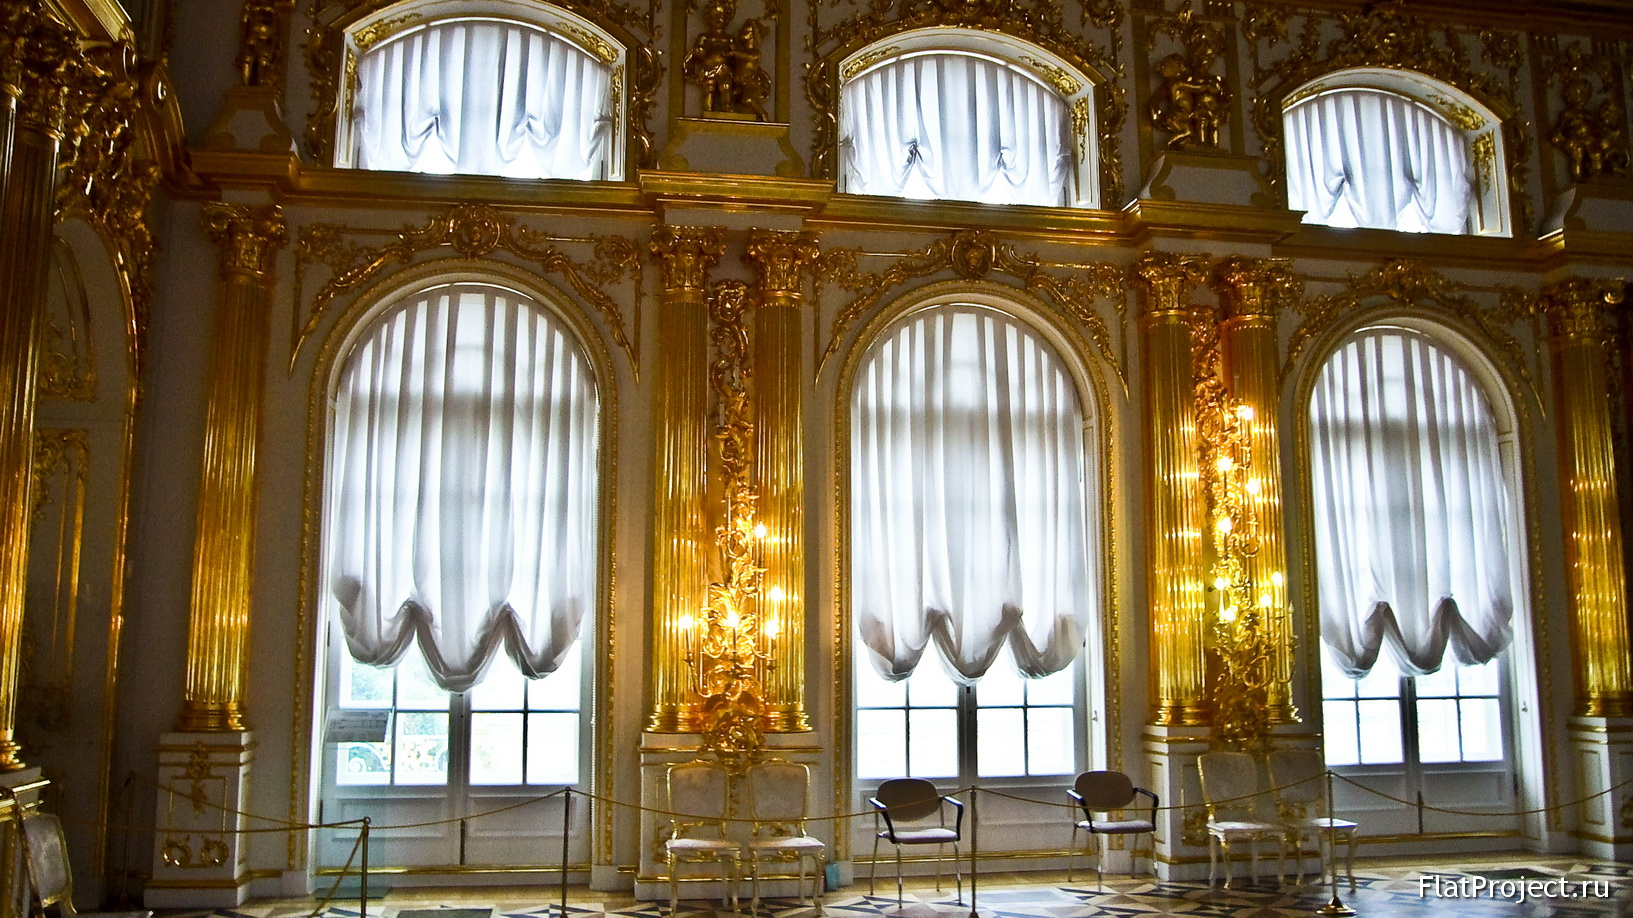 The Catherine Palace interiors – photo 290